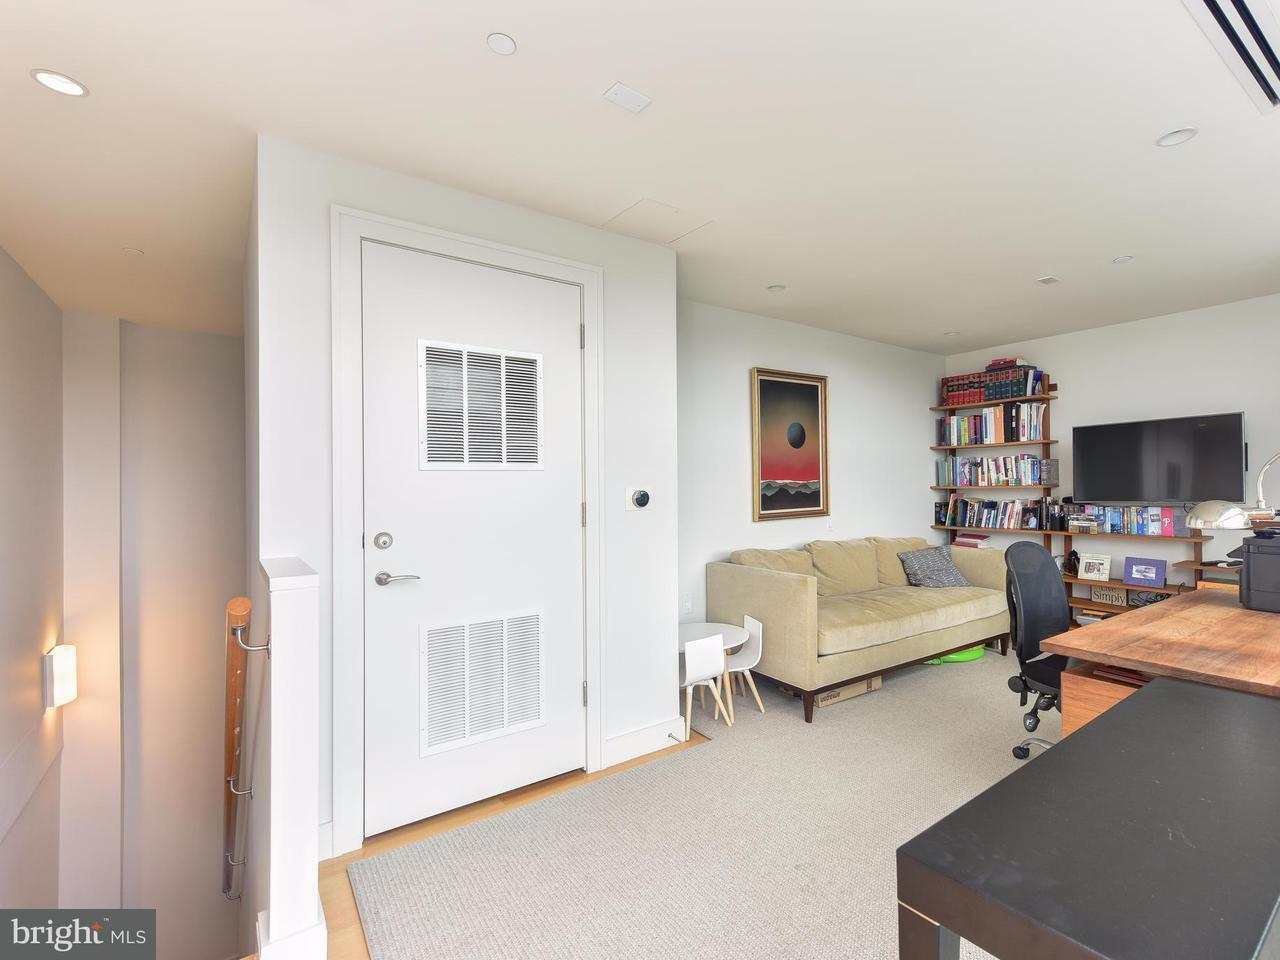 Additional photo for property listing at 1177 22nd St Nw #9a 1177 22nd St Nw #9a Washington, Округ Колумбия 20037 Соединенные Штаты